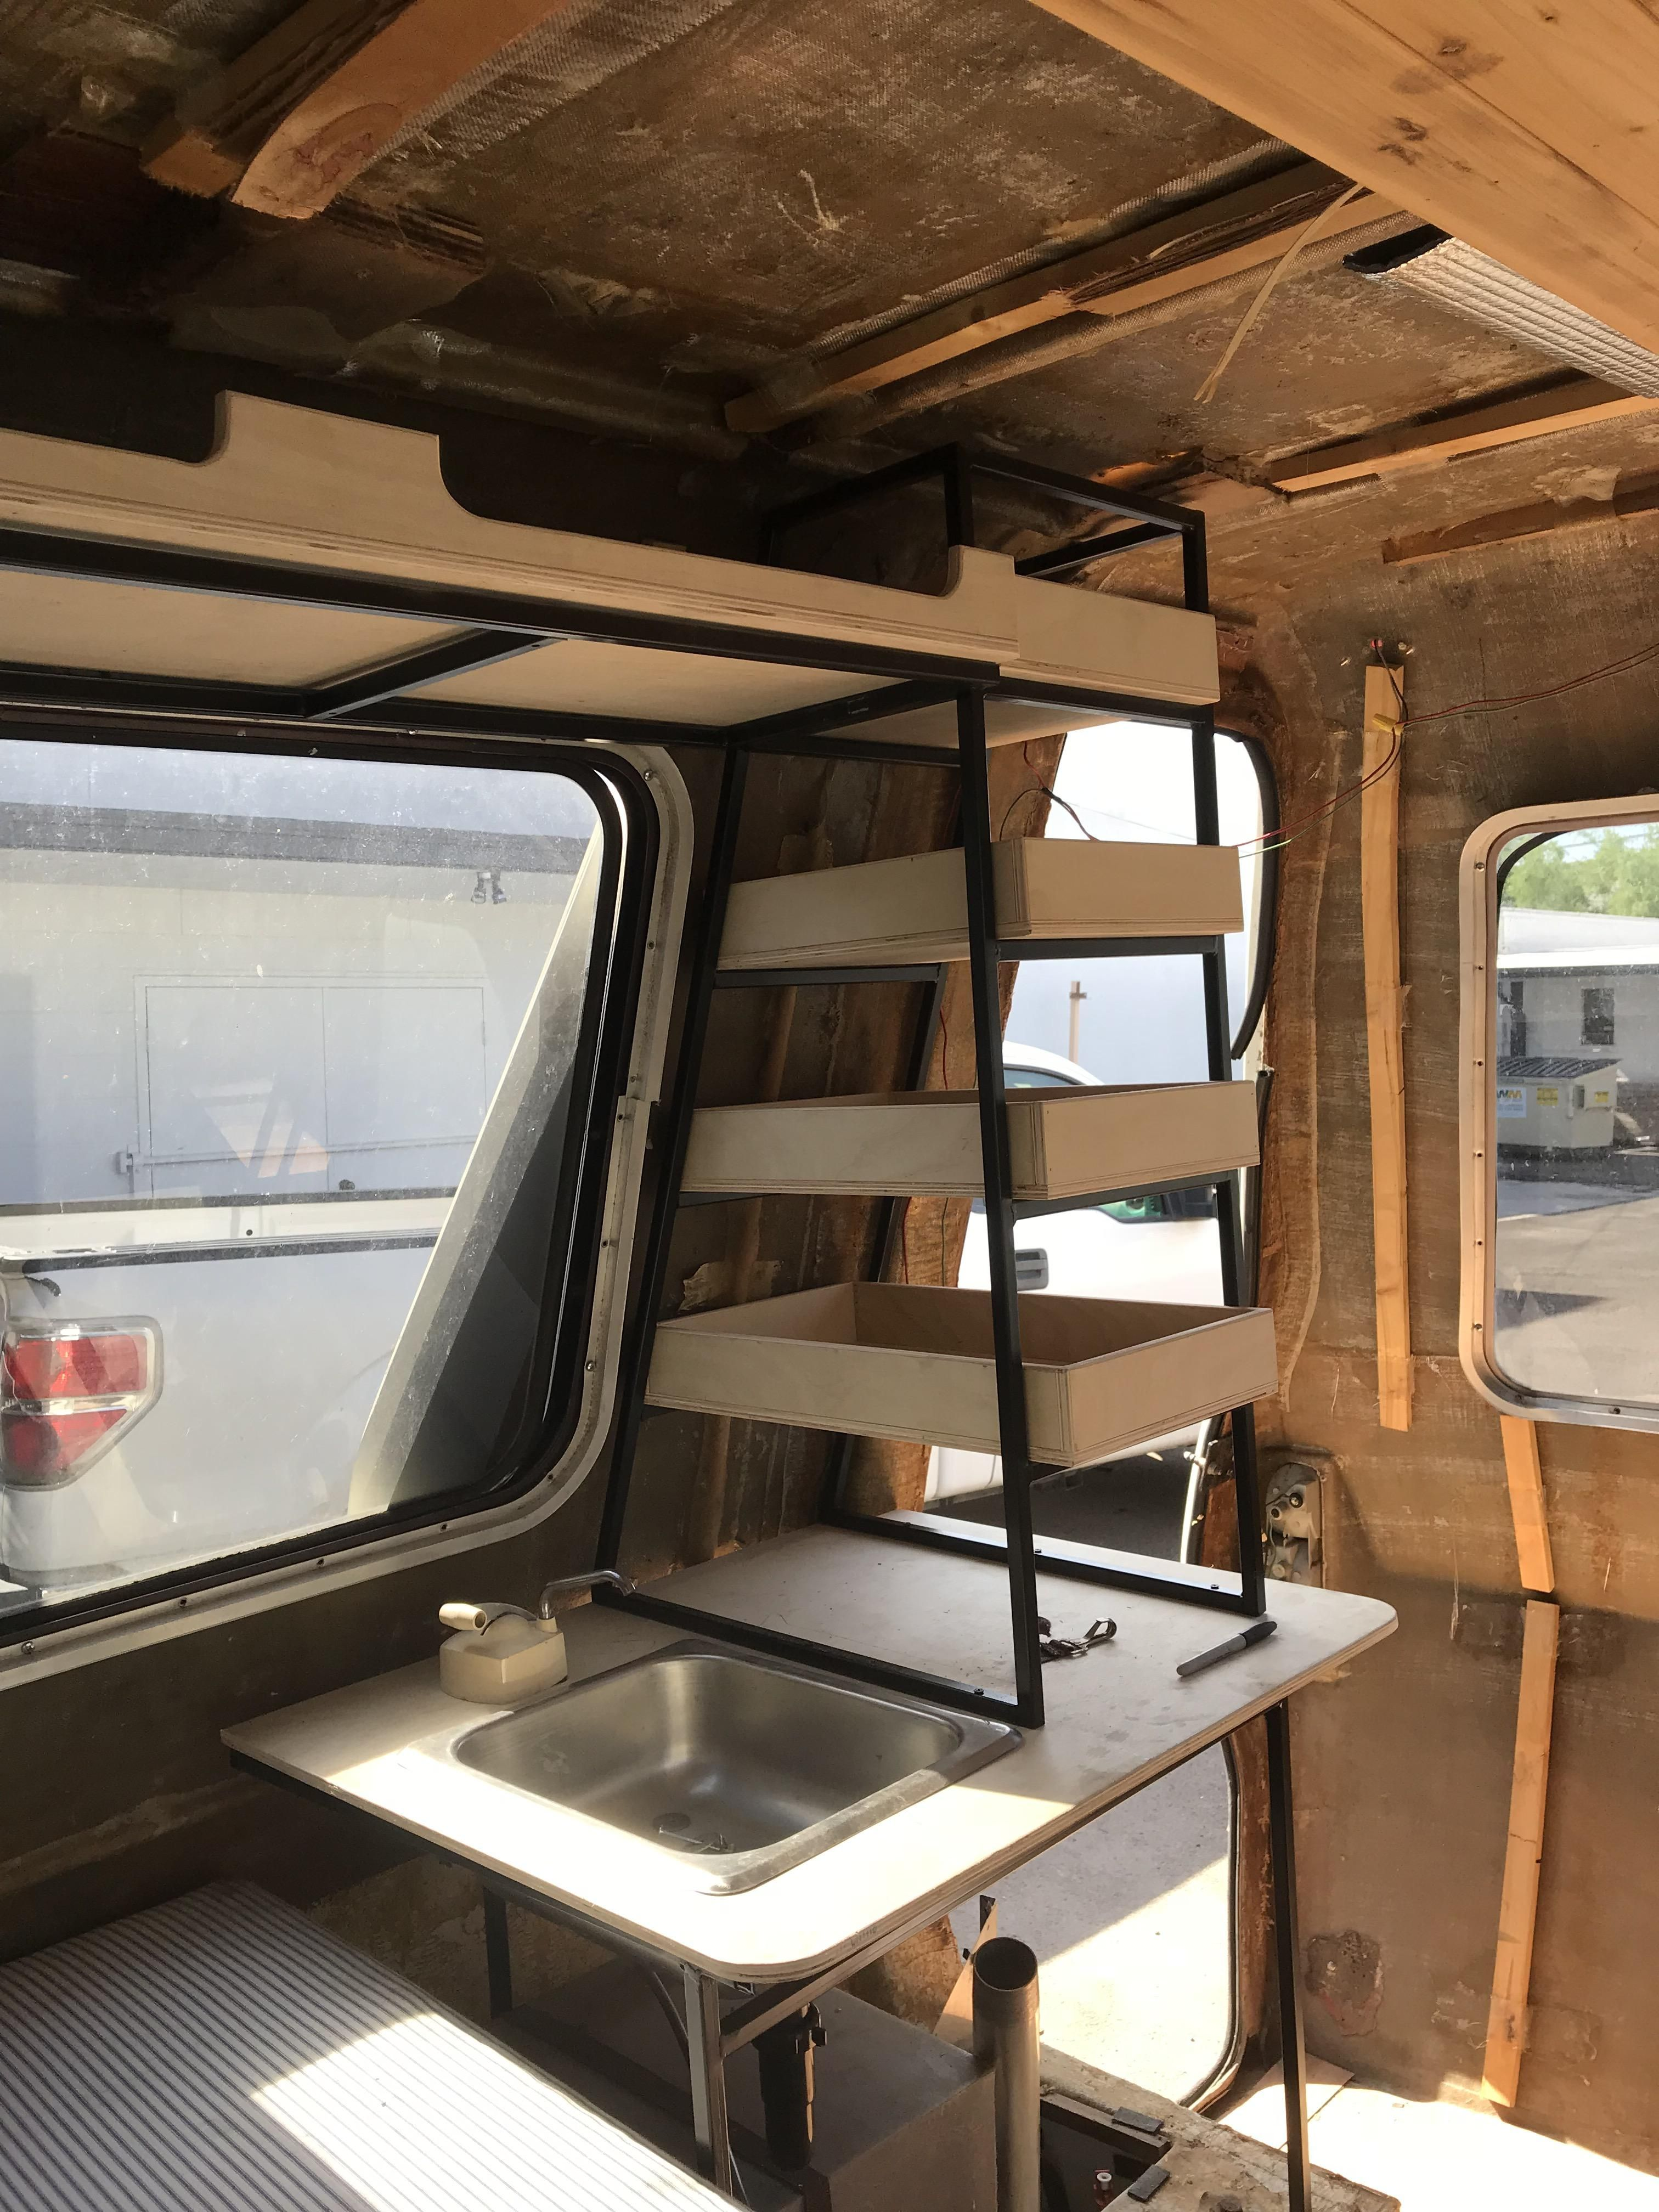 Installing Some Wood And Steel In A 78 Chinook Camper